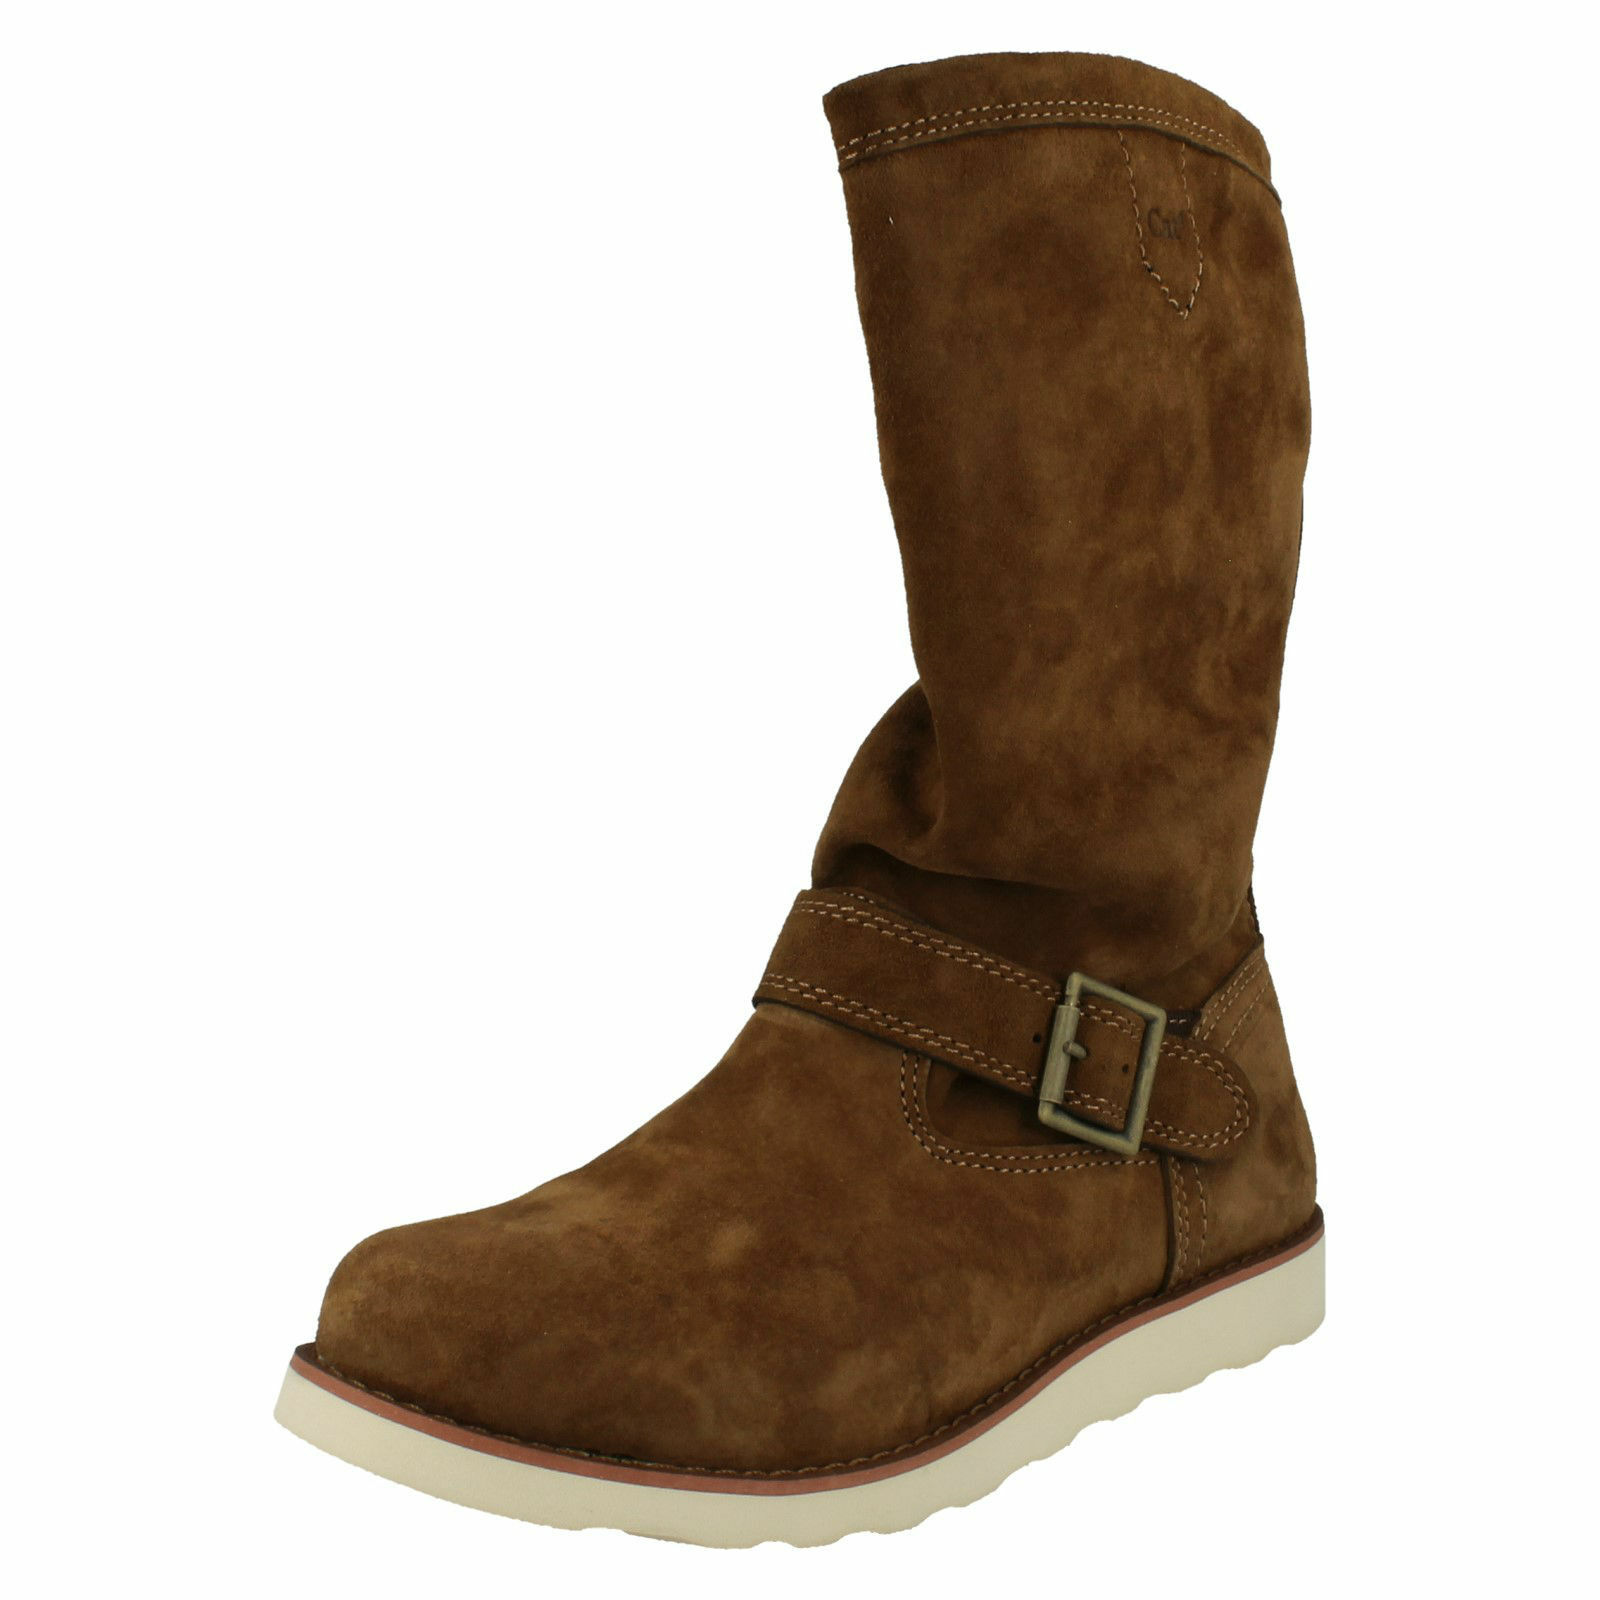 CATERPILLAR CLAUDETTE P305761 LADIES CASUAL PULL ON MID CALF LONG WINTER BOOTS